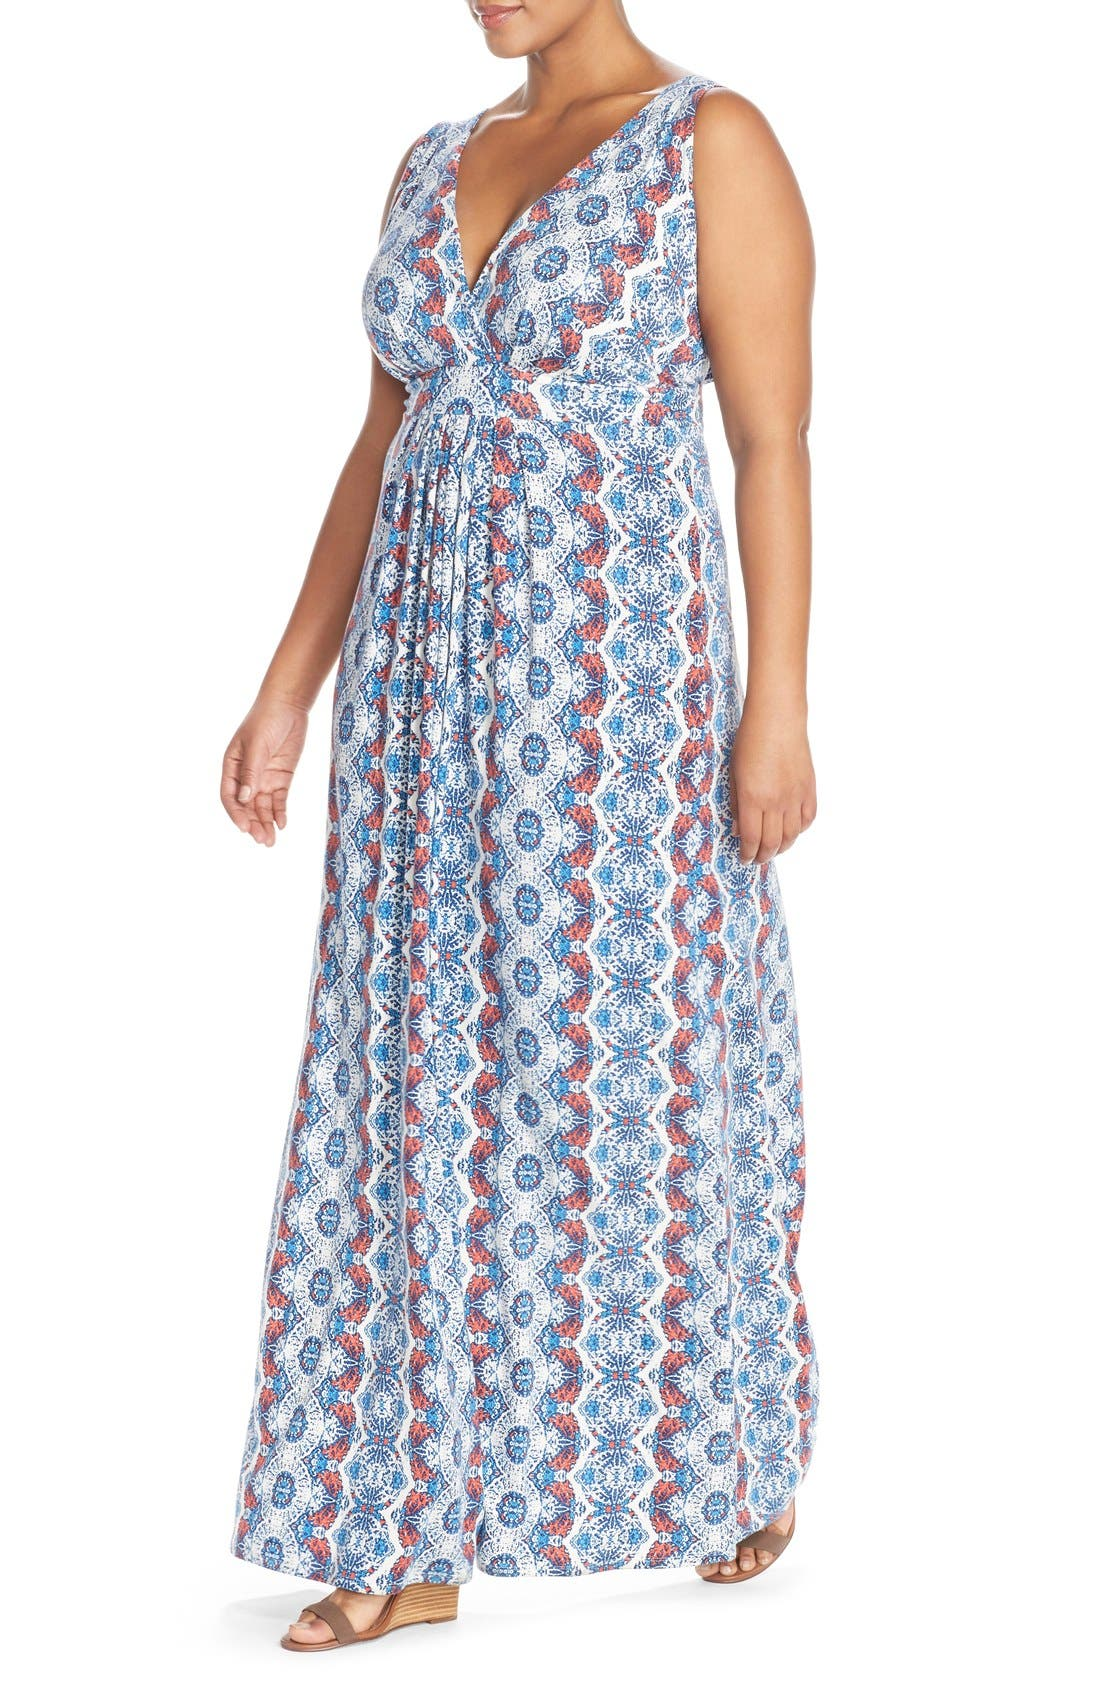 Chloe Empire Waist Maxi Dress,                             Alternate thumbnail 68, color,